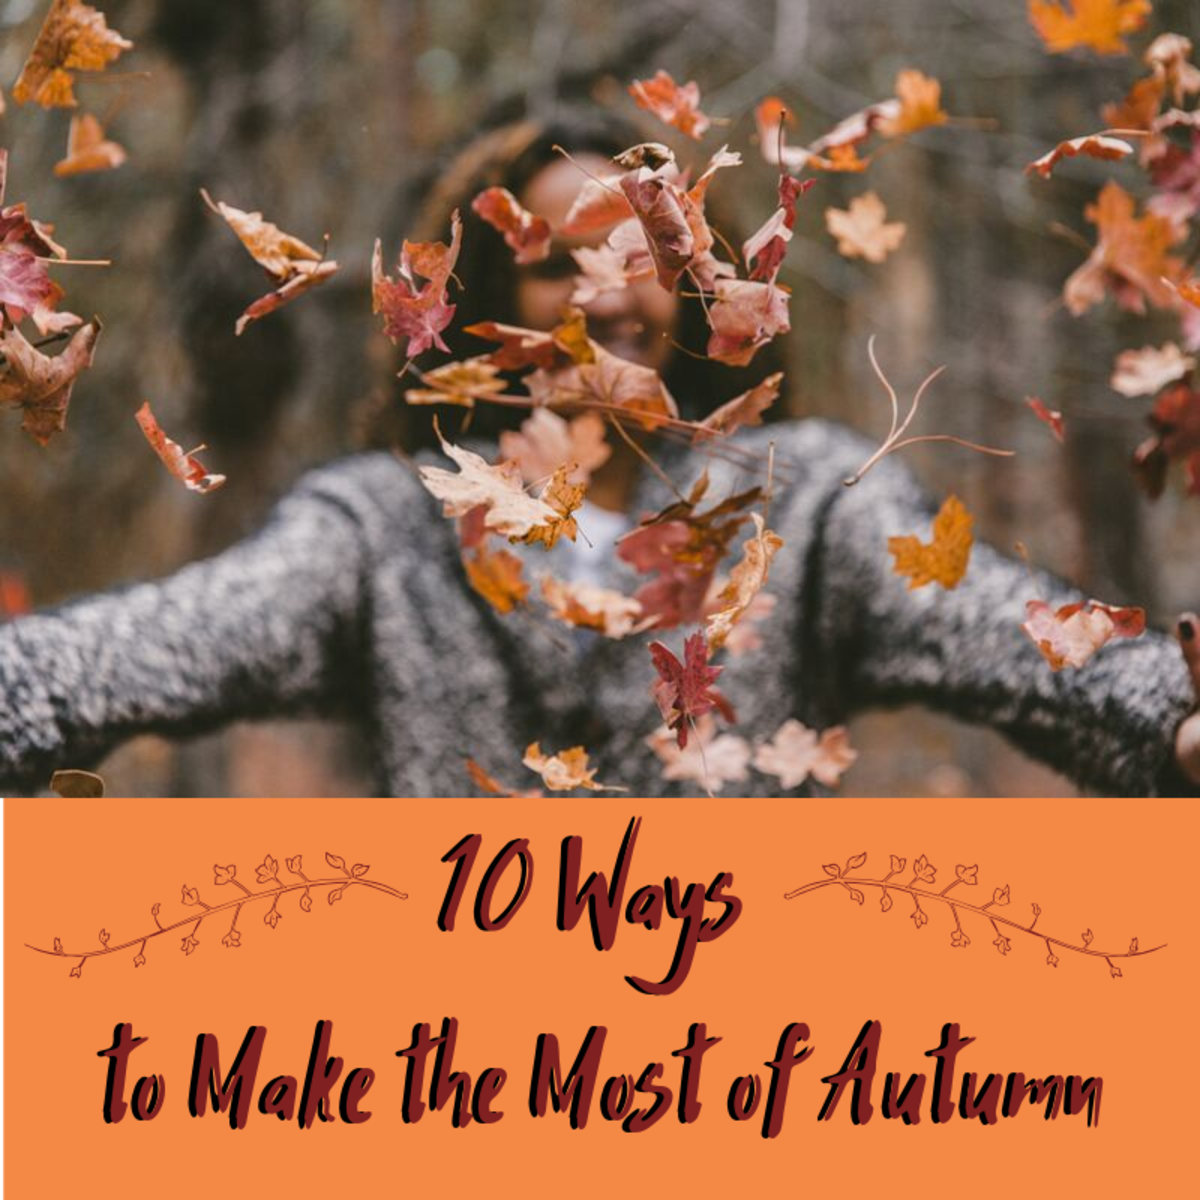 Fall is my favorite season, and these are my 10 favorite ways to enjoy it.